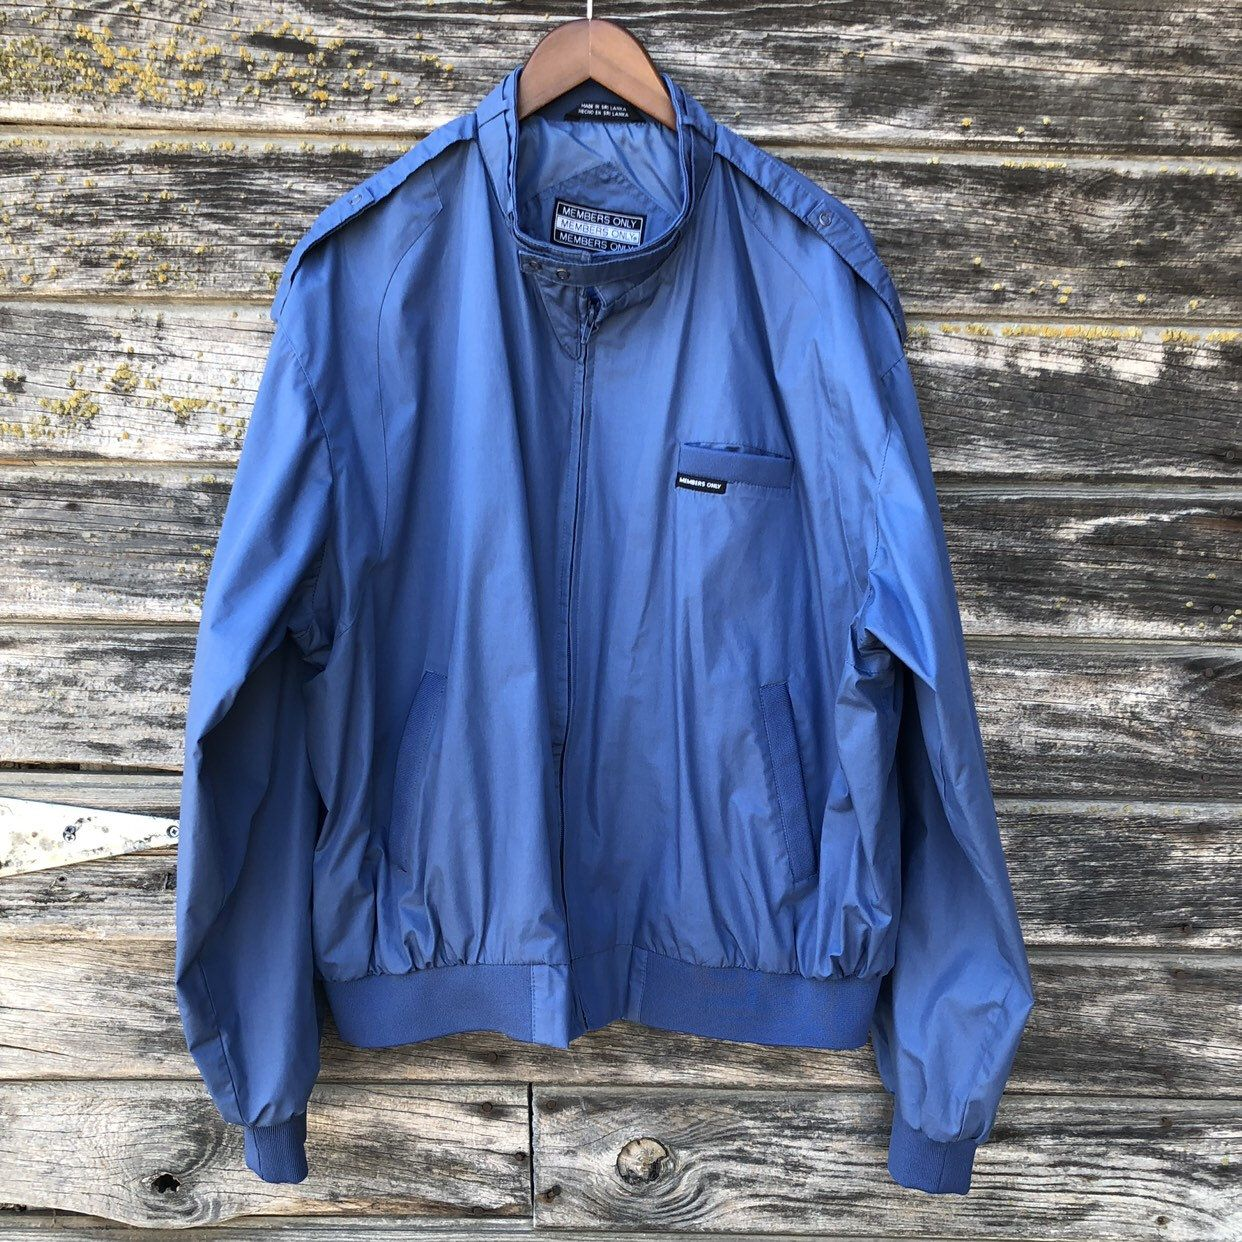 Vintage Members Only Jacket Xxl Oversized Blue 80s Windbreaker 1980s